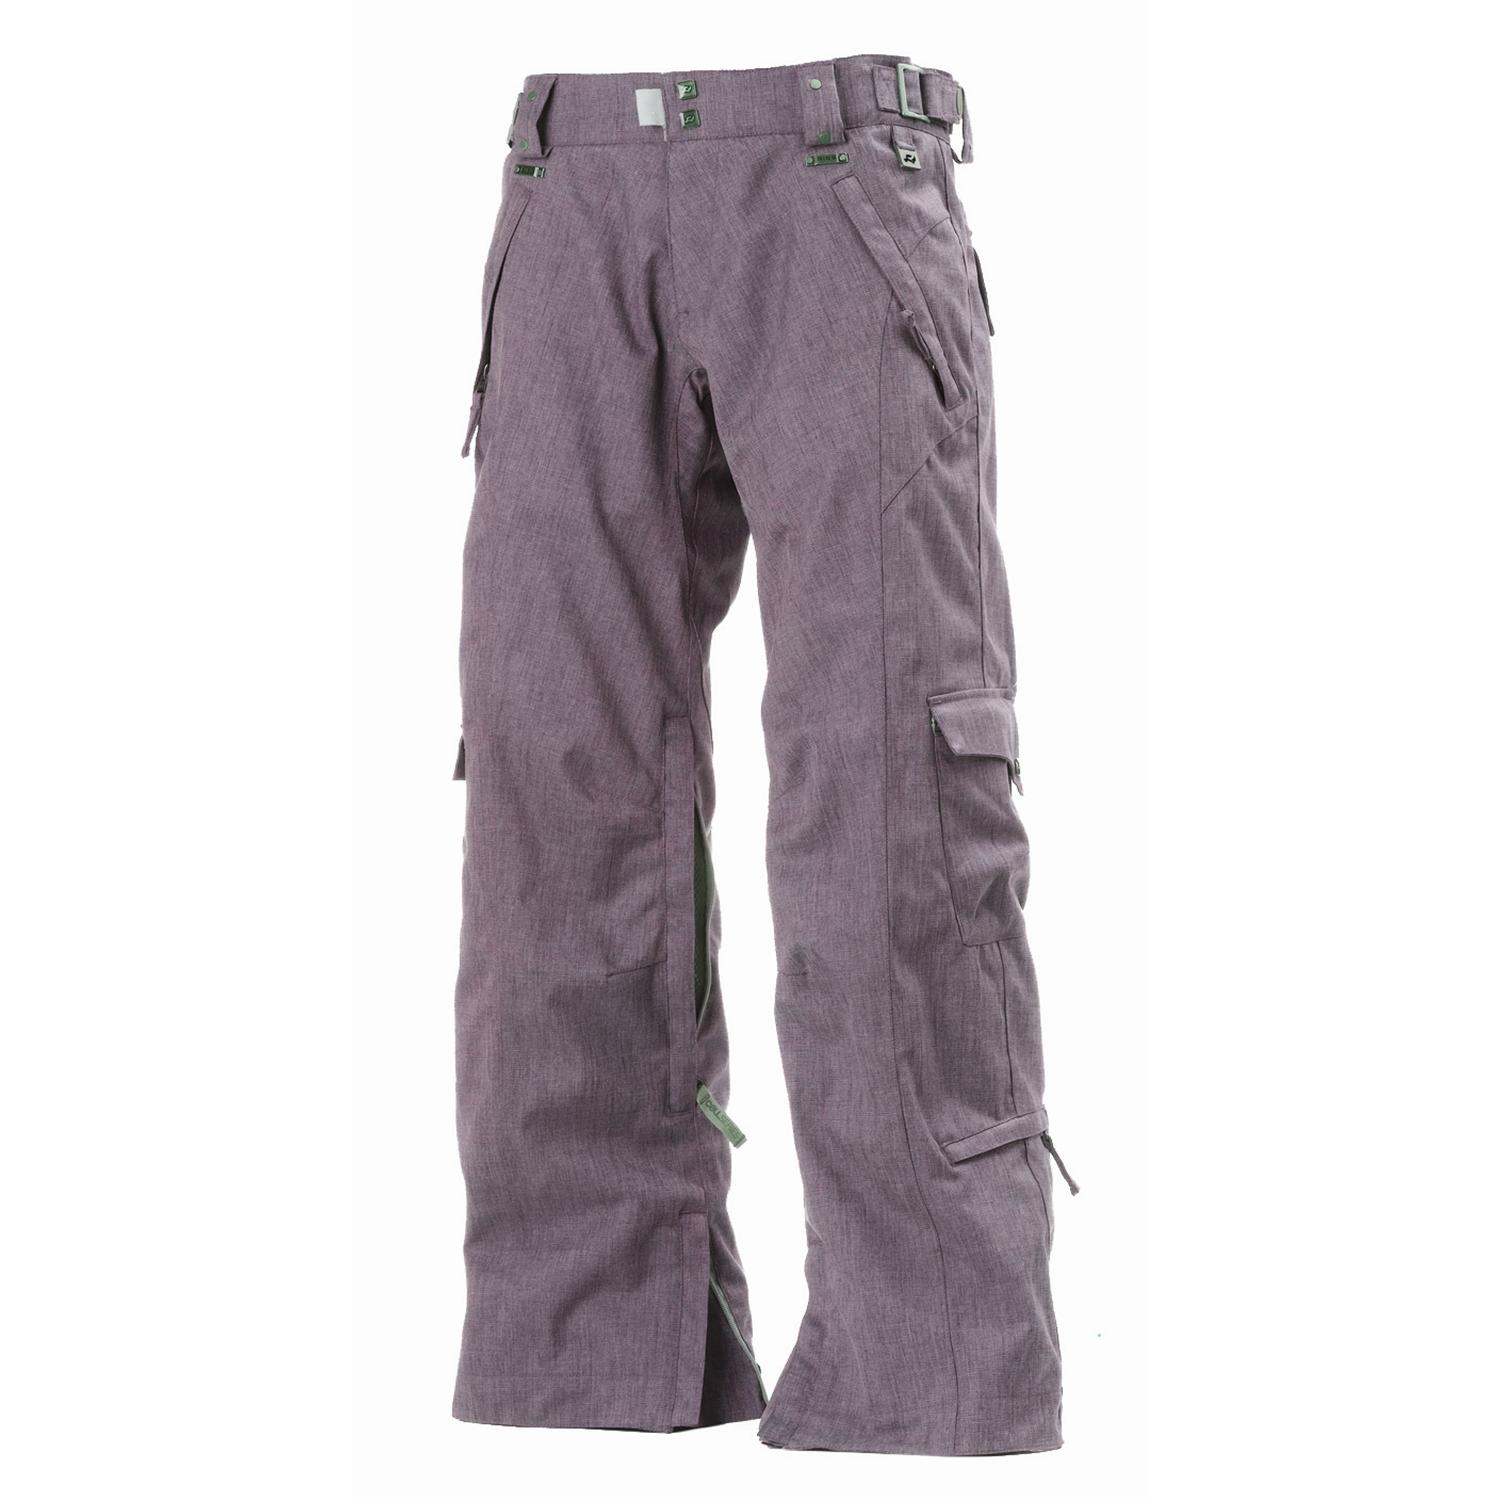 Excellent Cargo Pants For Women  Bing Images